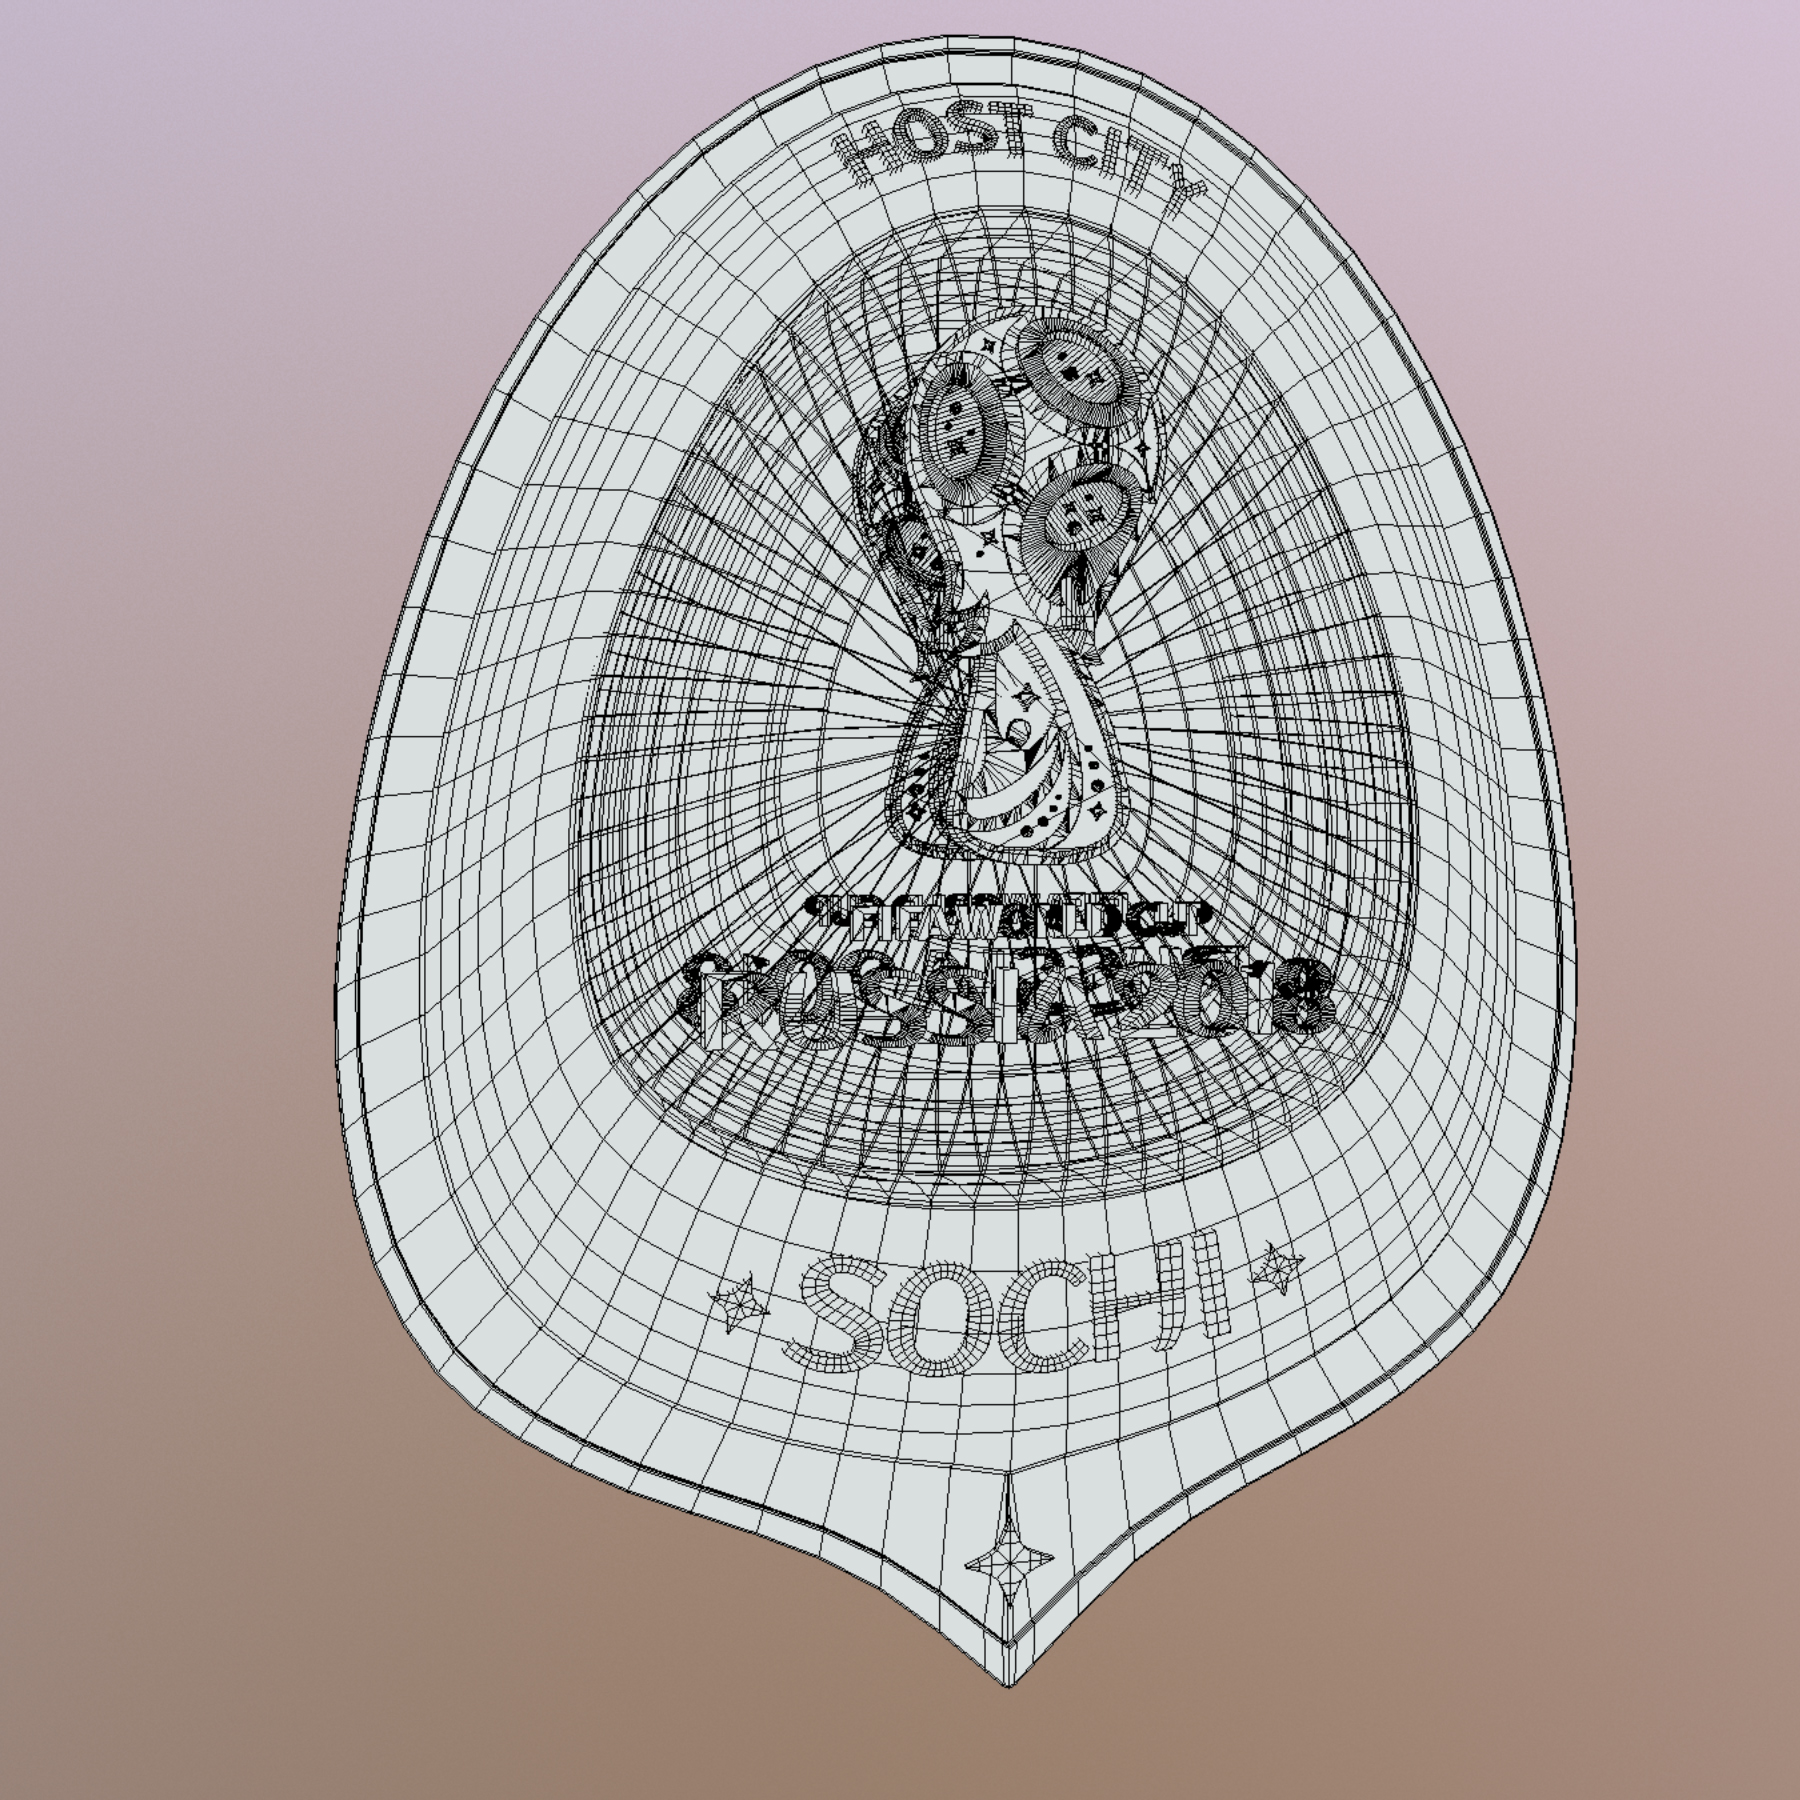 sochi host city world cup russia 2018 symbol 3d model max  fbx ma mb obj 271721